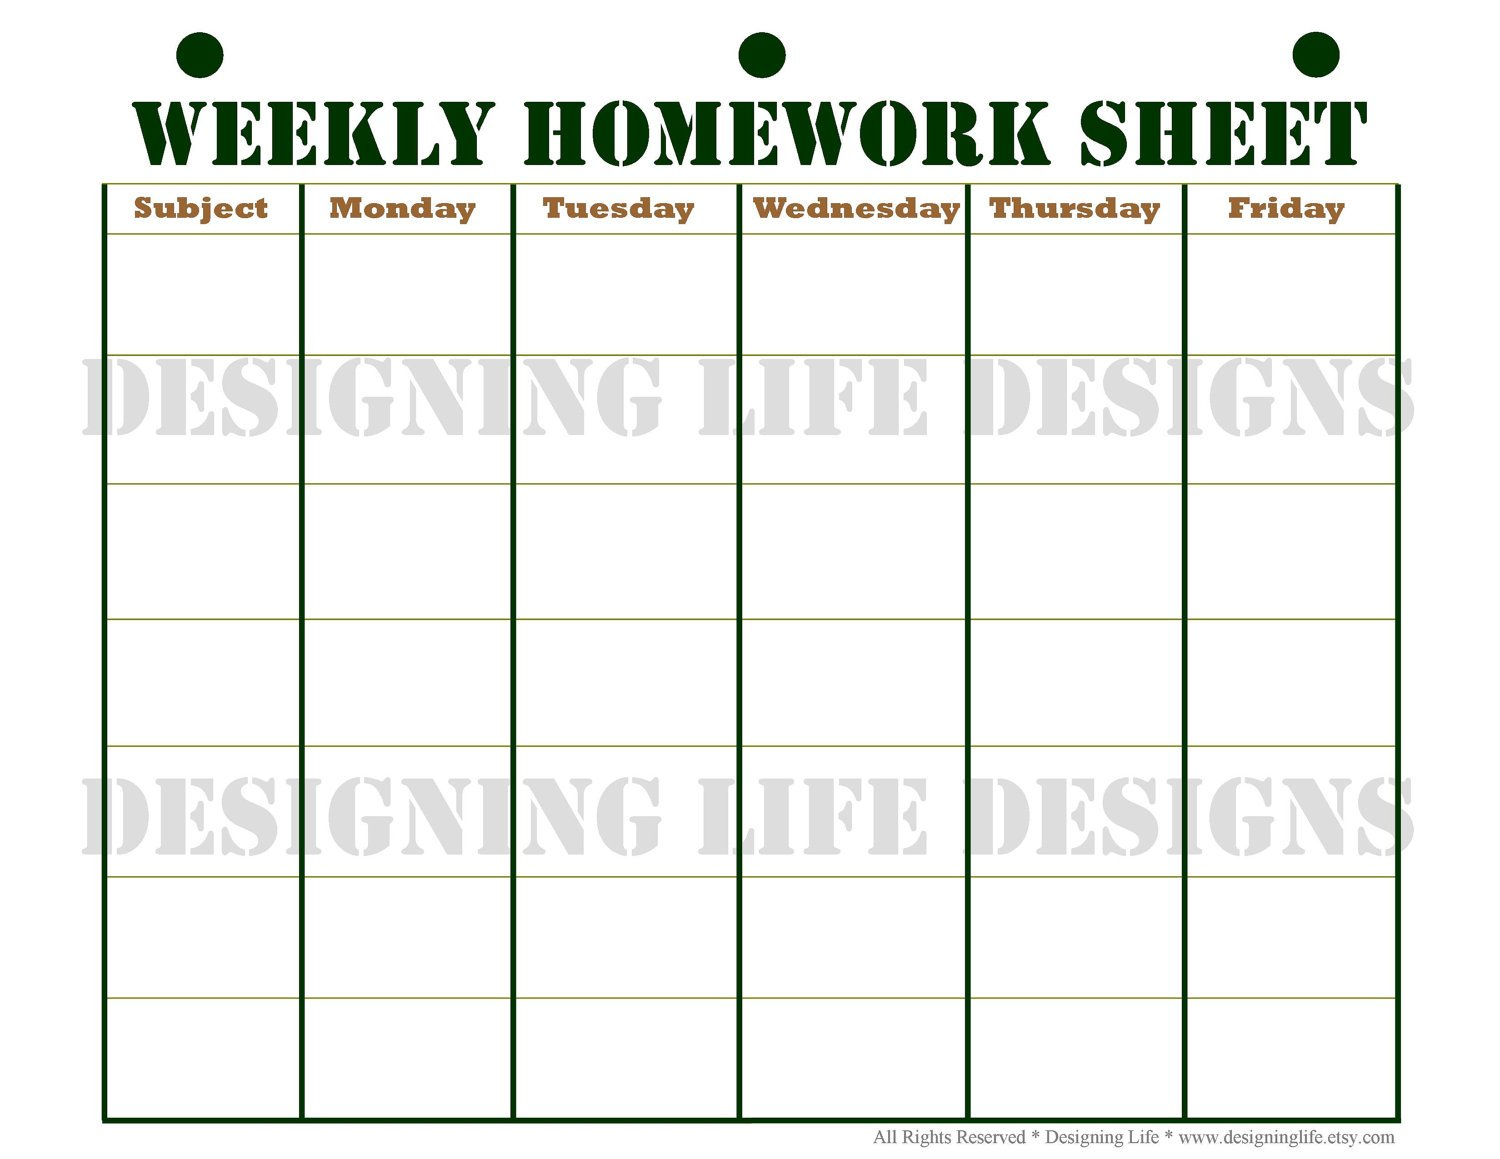 Weekly Homework Sheet Template. Free Printable Daily Chore Chart within Cute Homework Schedule Template Printable